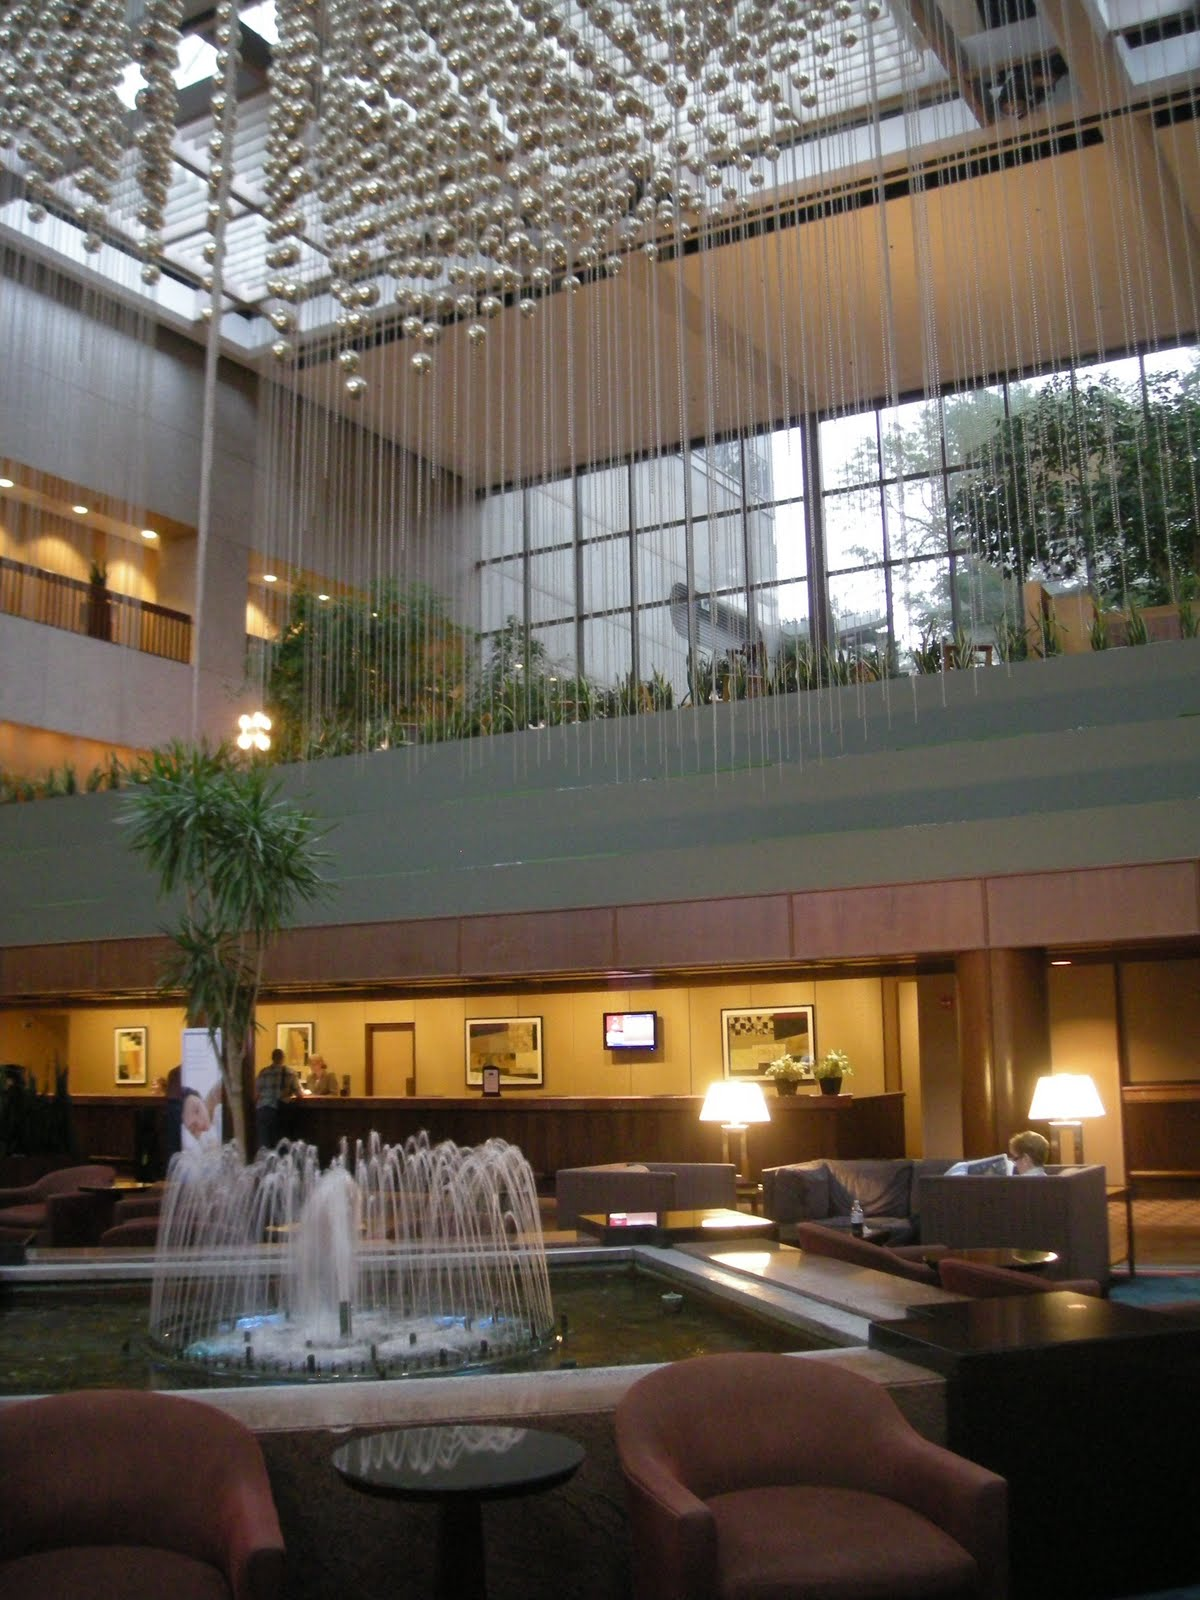 Discount coupons for union station kansas city